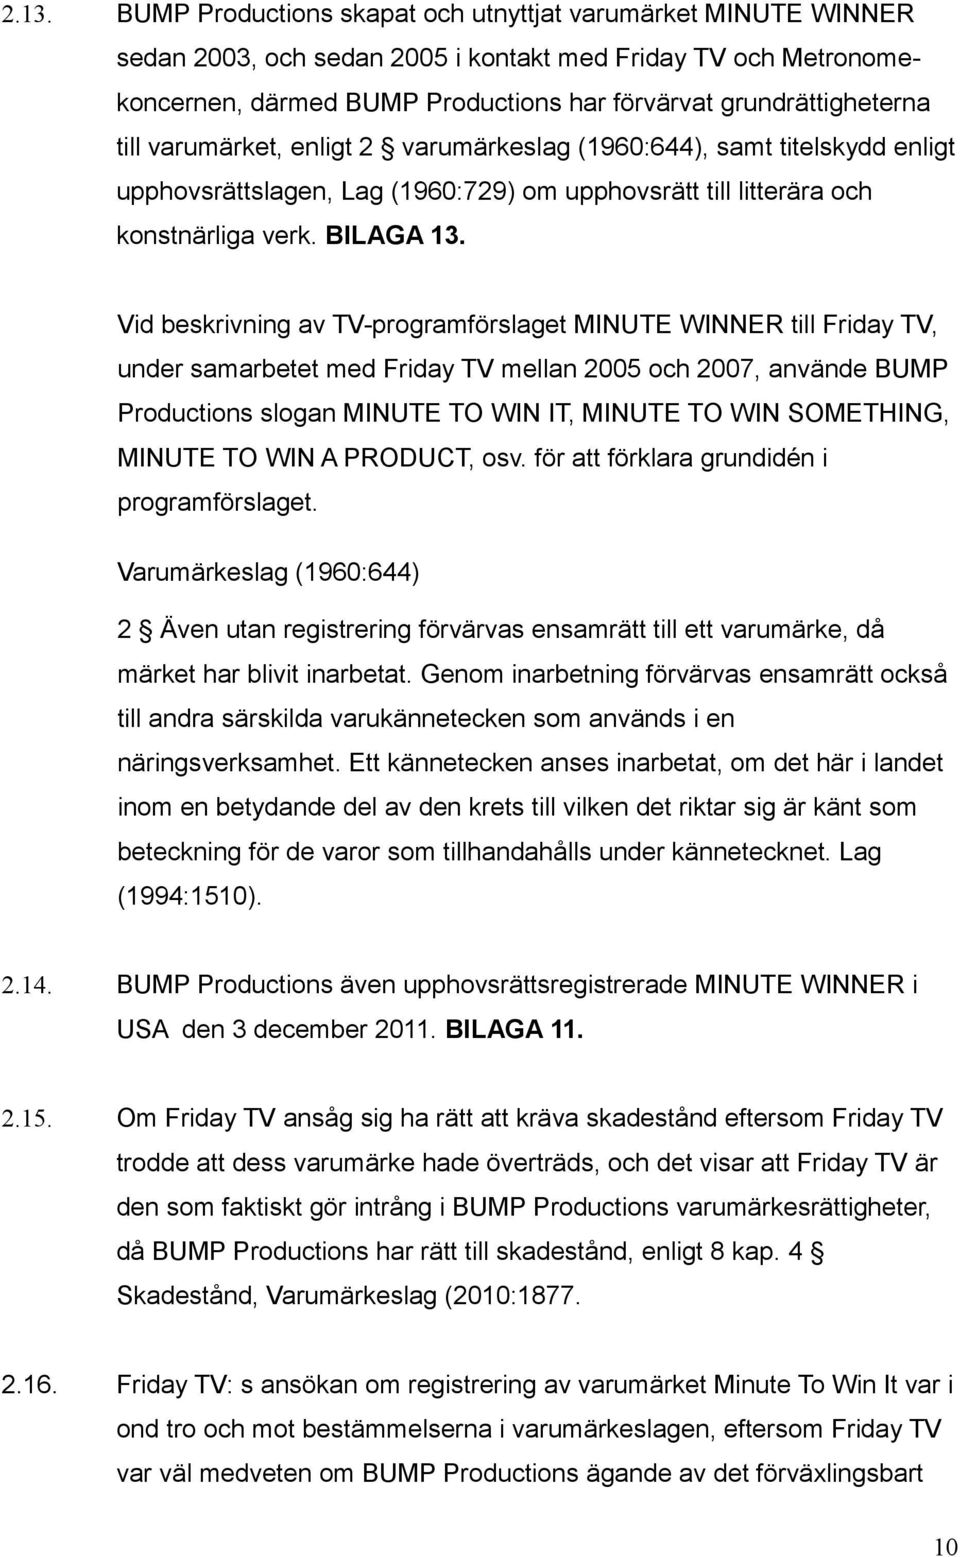 Vid beskrivning av TV-programförslaget MINUTE WINNER till Friday TV, under samarbetet med Friday TV mellan 2005 och 2007, använde BUMP Productions slogan MINUTE TO WIN IT, MINUTE TO WIN SOMETHING,